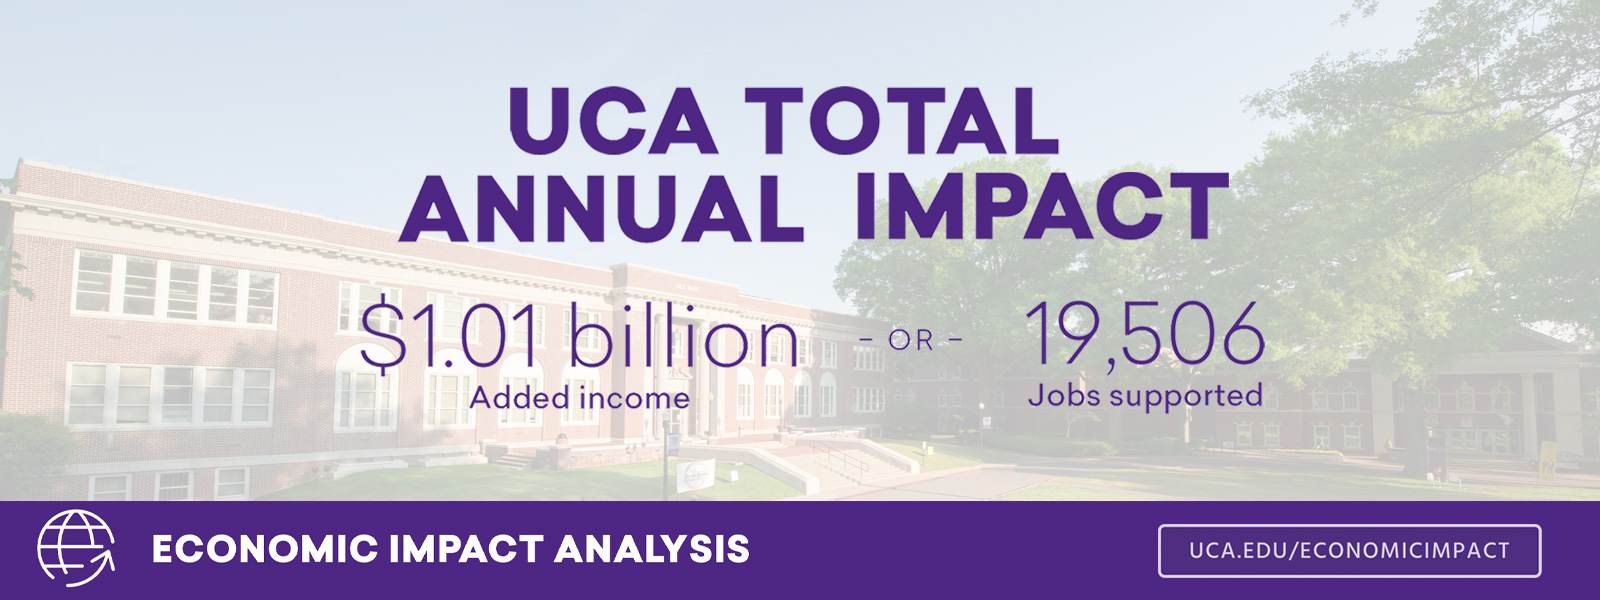 UCA Economic Impact Analysis